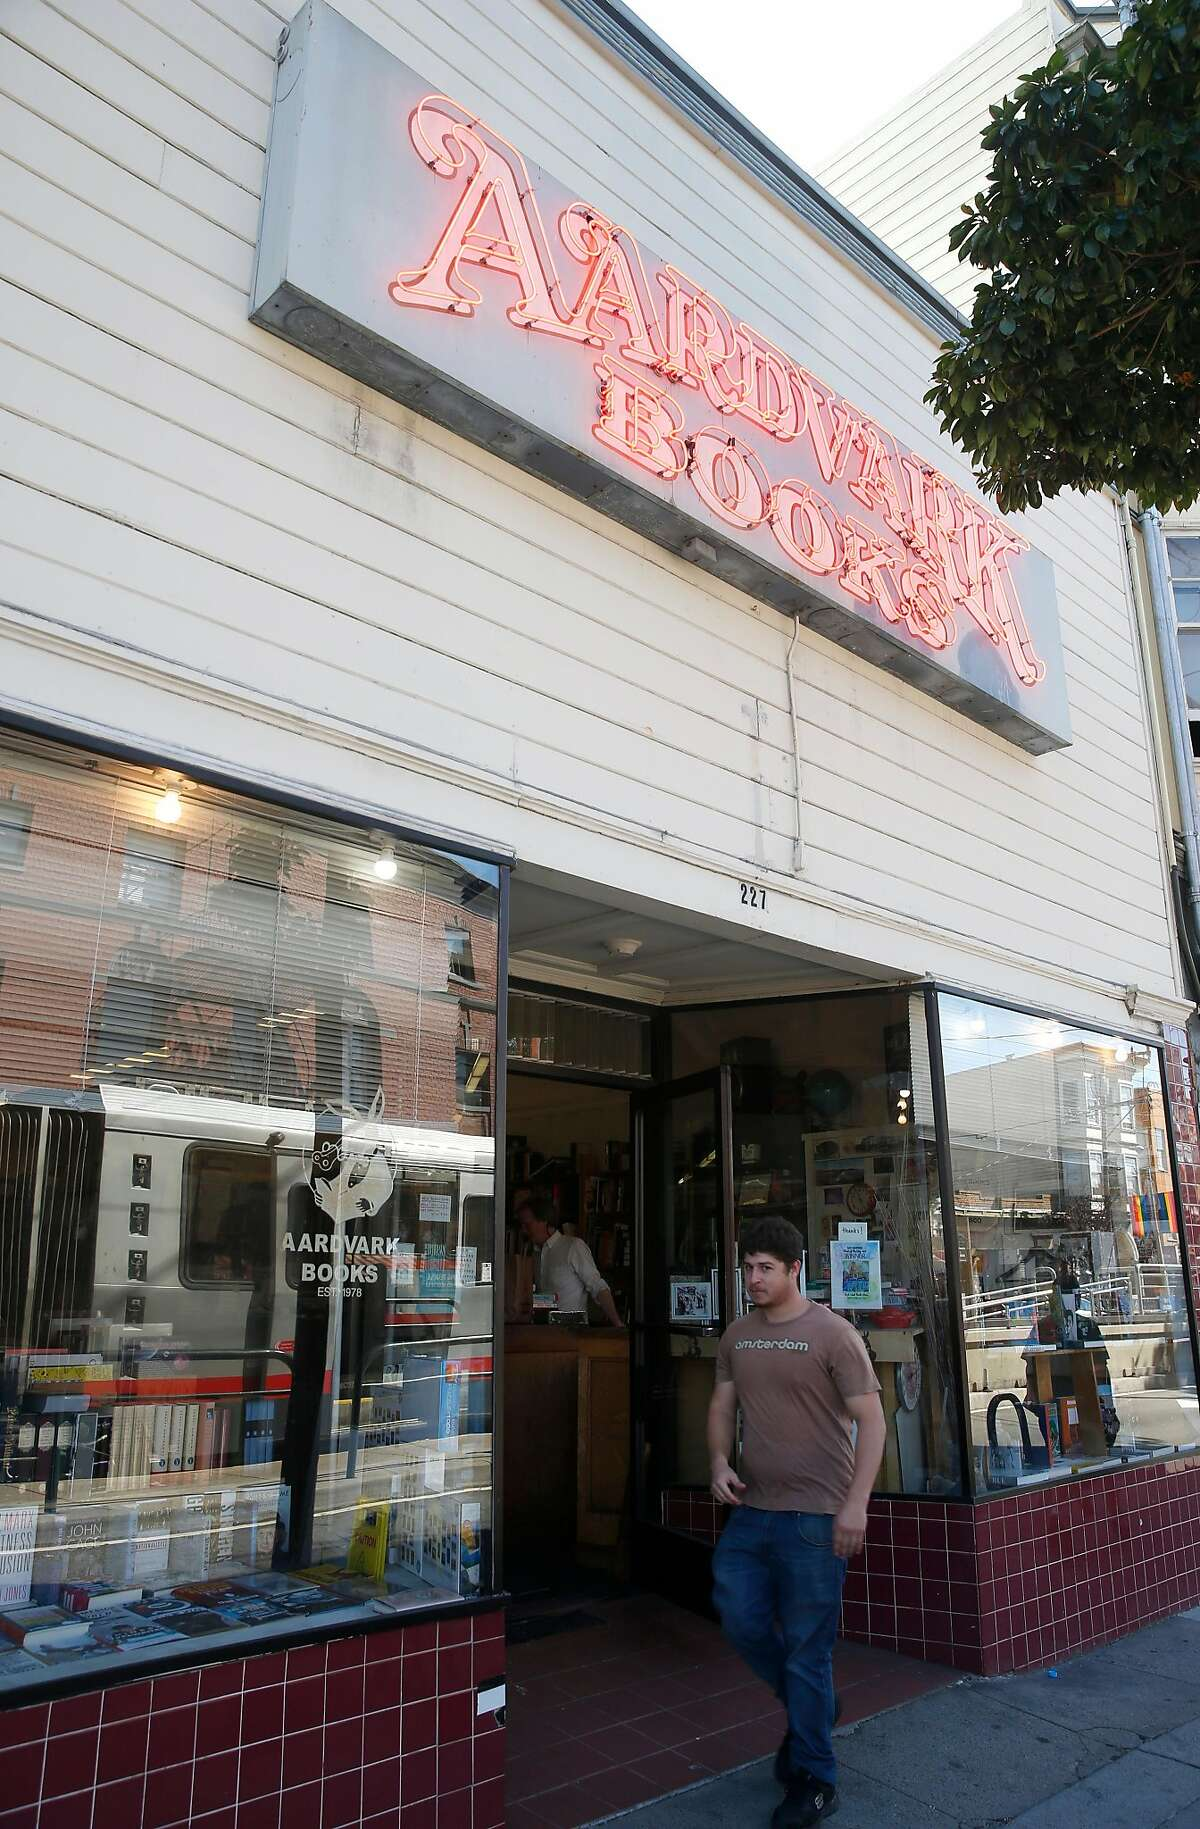 Aardvark Books is seen on Church Street in San Francisco, Calif. on Tuesday, Sept. 26, 2017. The used bookstore, which has been open since 1978, announced that it will have to shut down by the end of January 2018 after the landlord put the building up for sale.